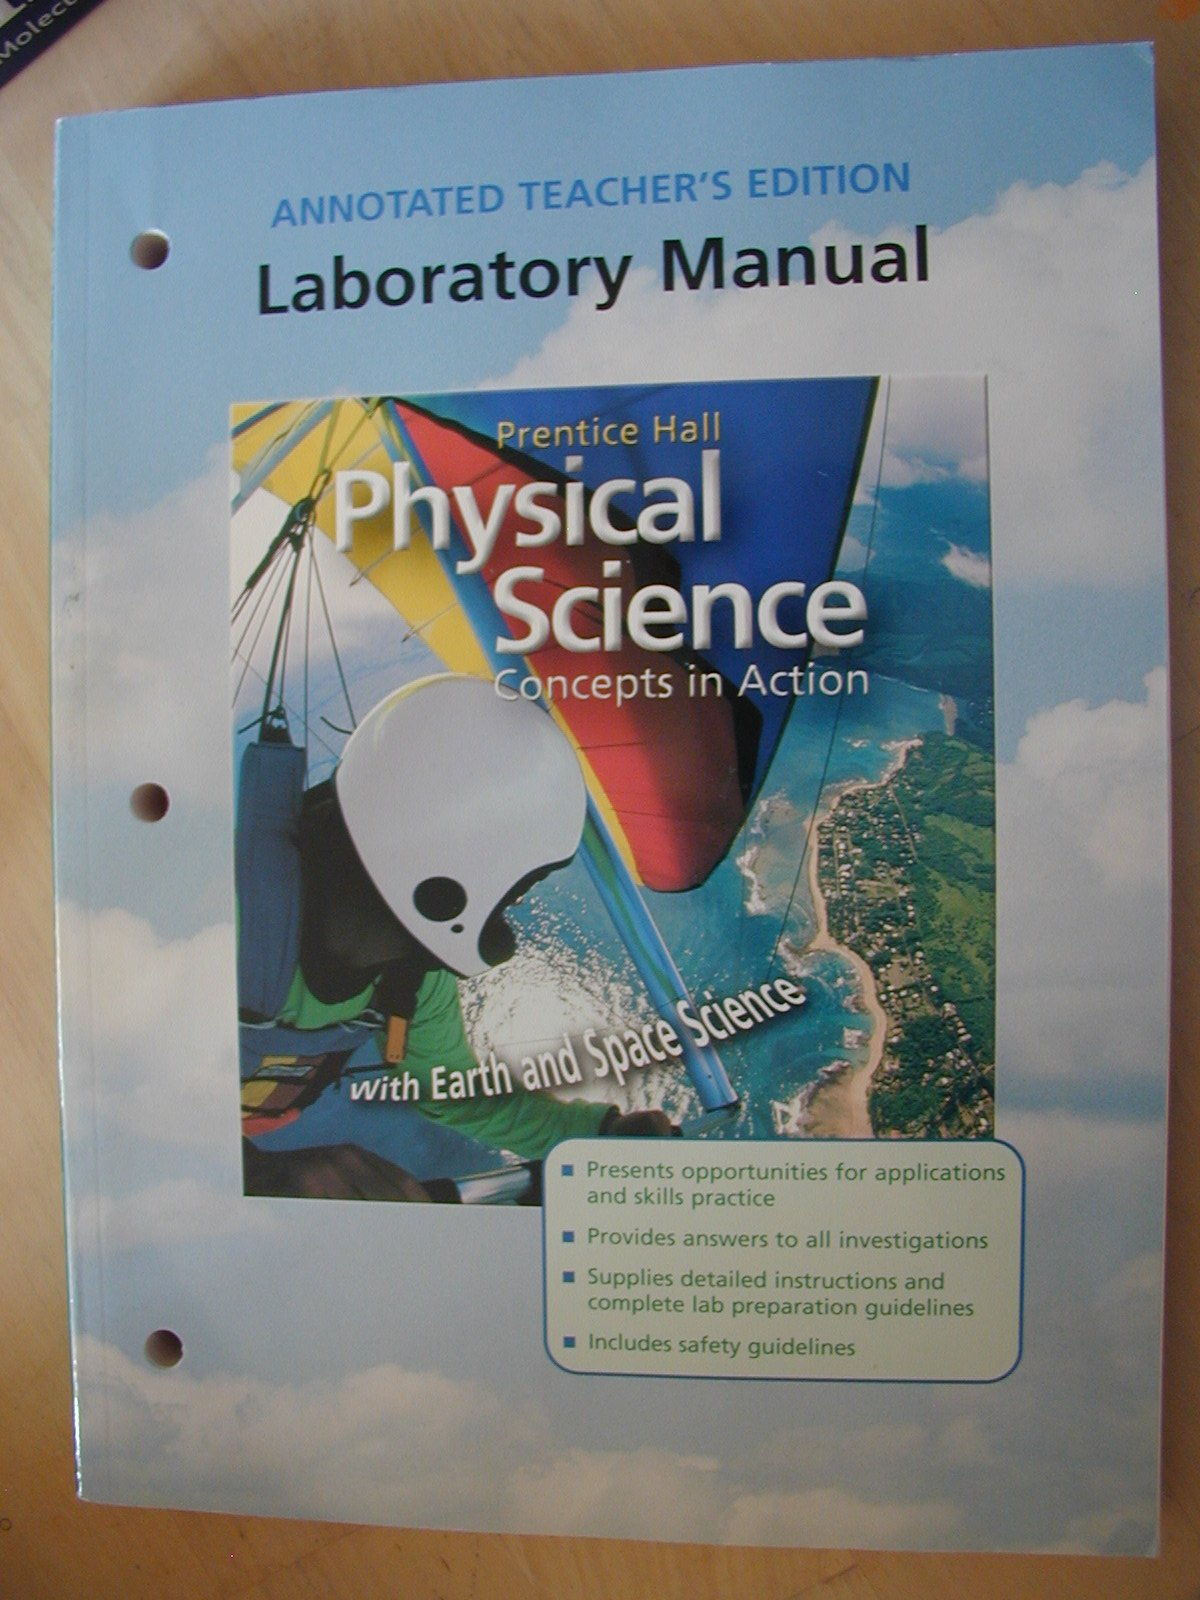 Worksheets Prentice Hall Physical Science Concepts In Action Worksheets prentice hall physical science concepts in action with earth and space laboratory manual annotated teachers edition